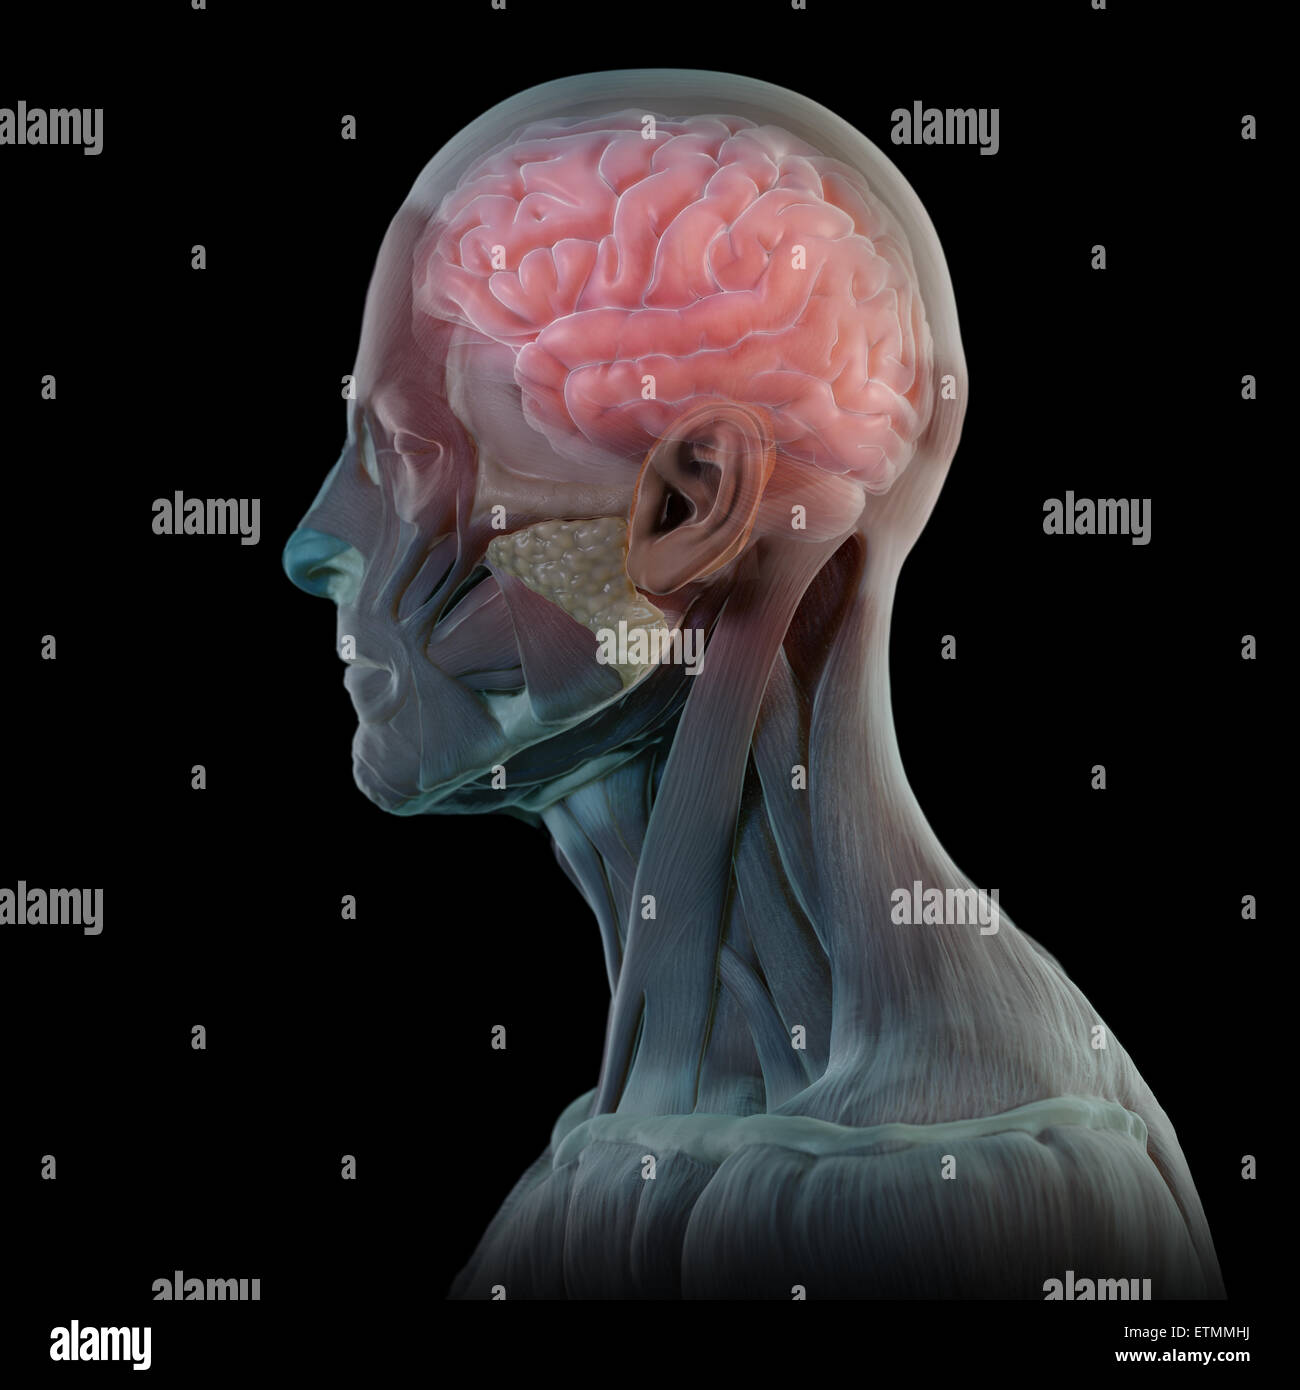 Conceptual image in the style of a clay model of the muscles of the face with the brain visible. Stock Photo